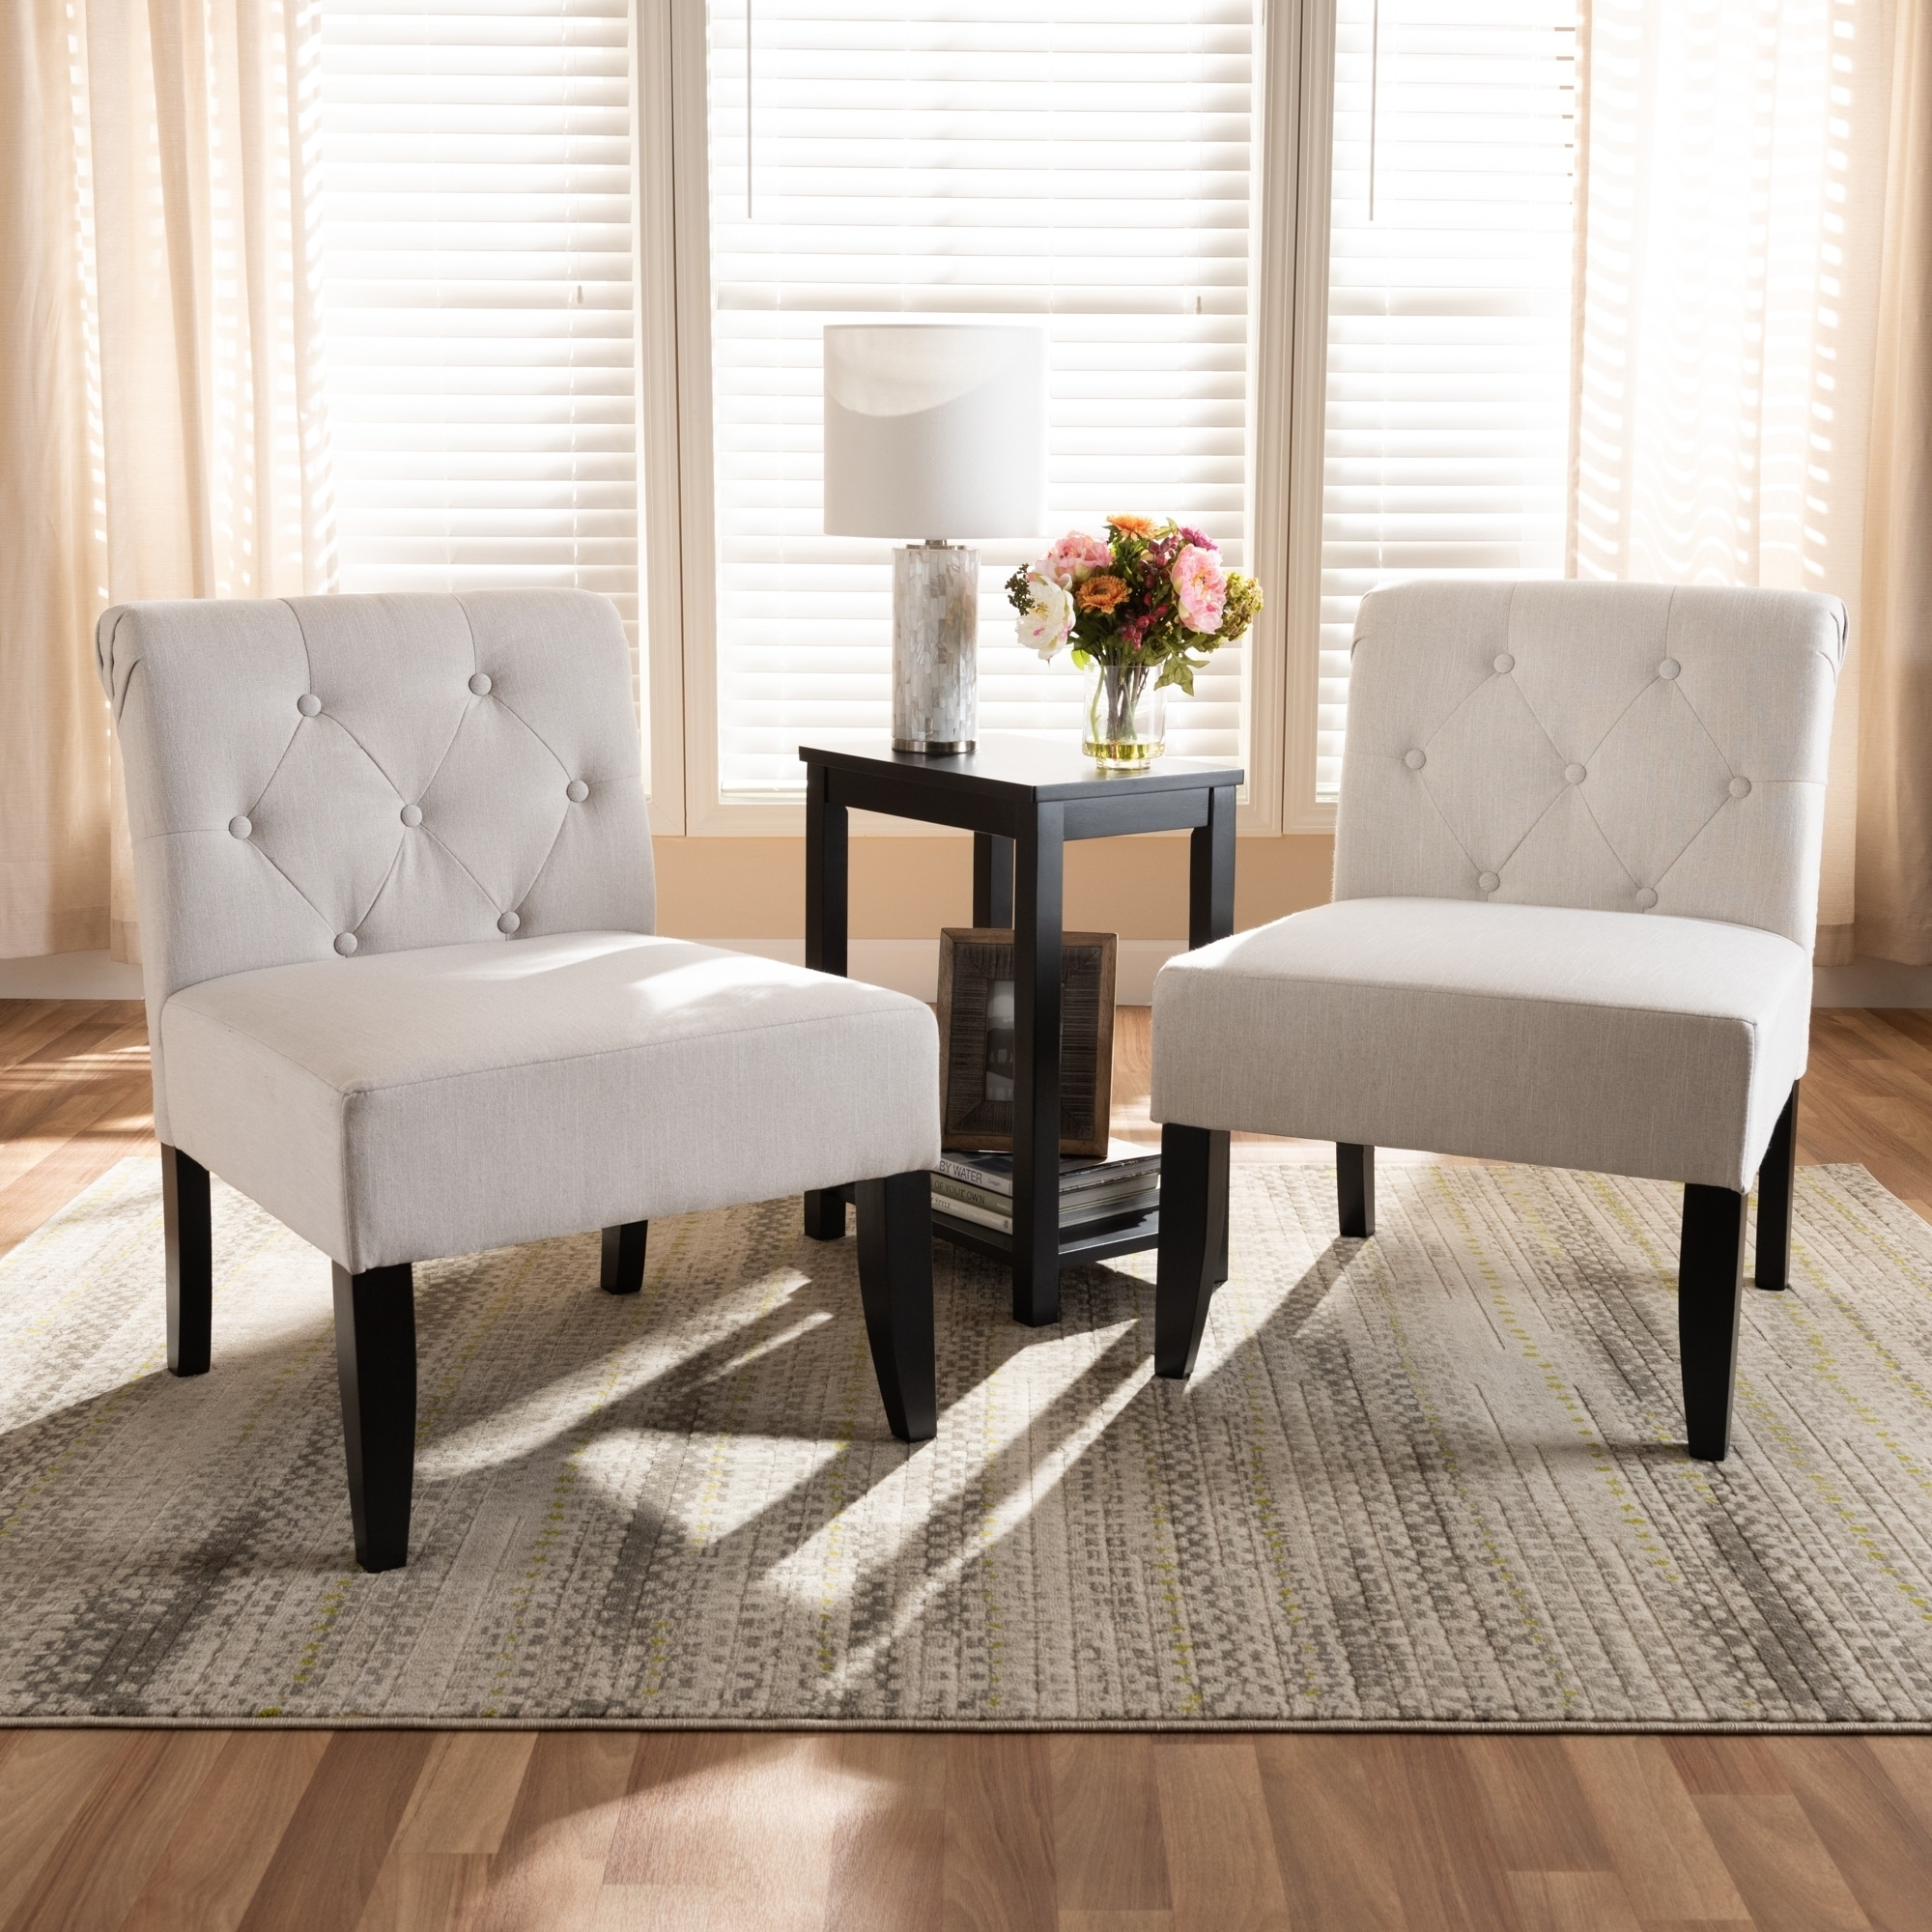 Transitional 3 Piece Accent Chair And Table Set On Sale Overstock 26409998